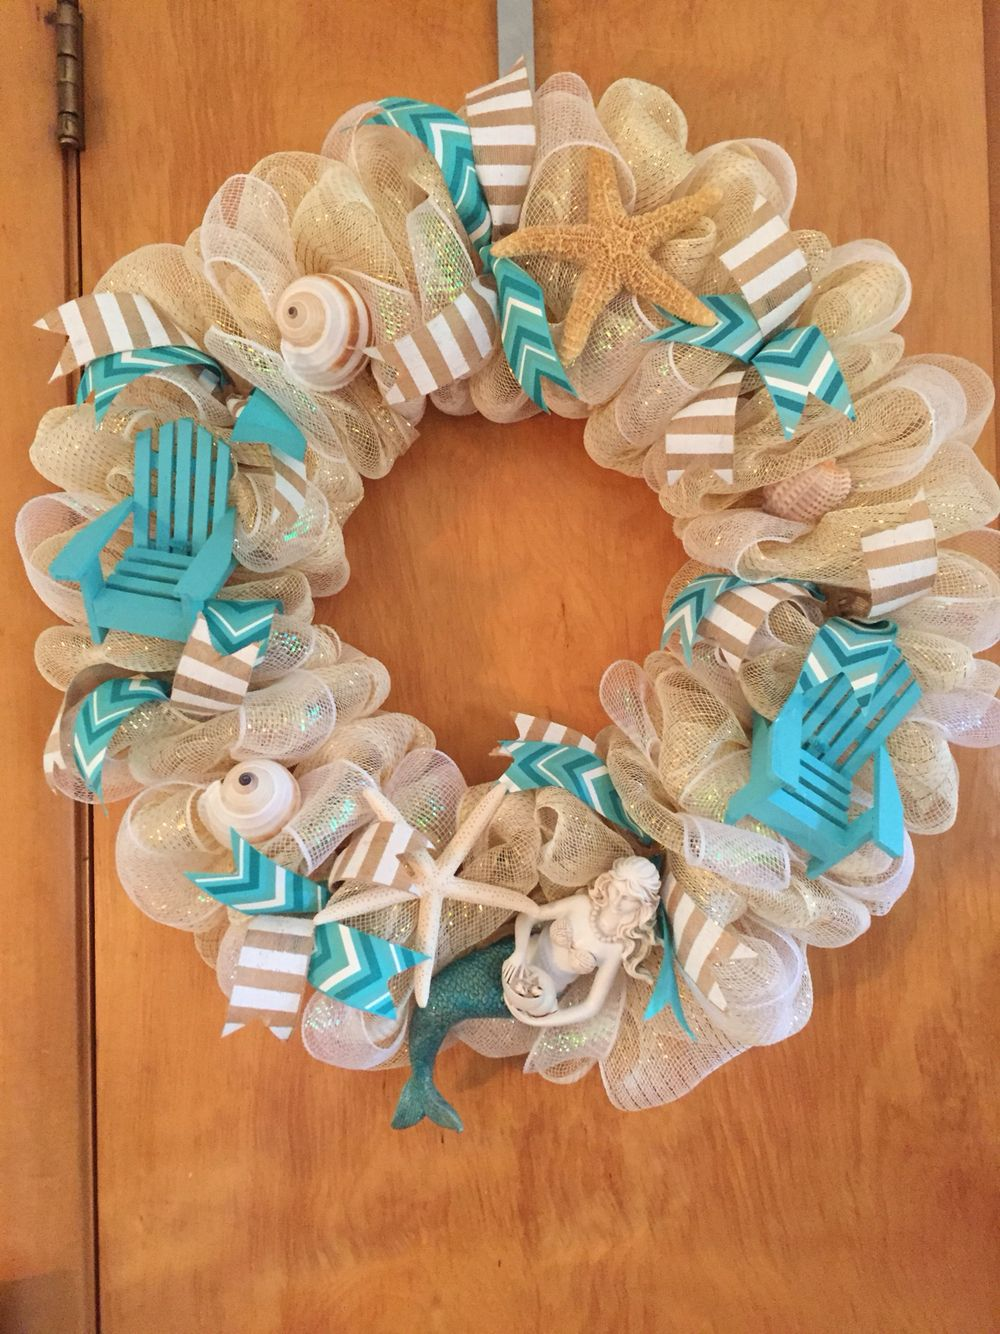 Geo mesh wreath form - Beach Mermaid Theme Deco Mesh Wreath